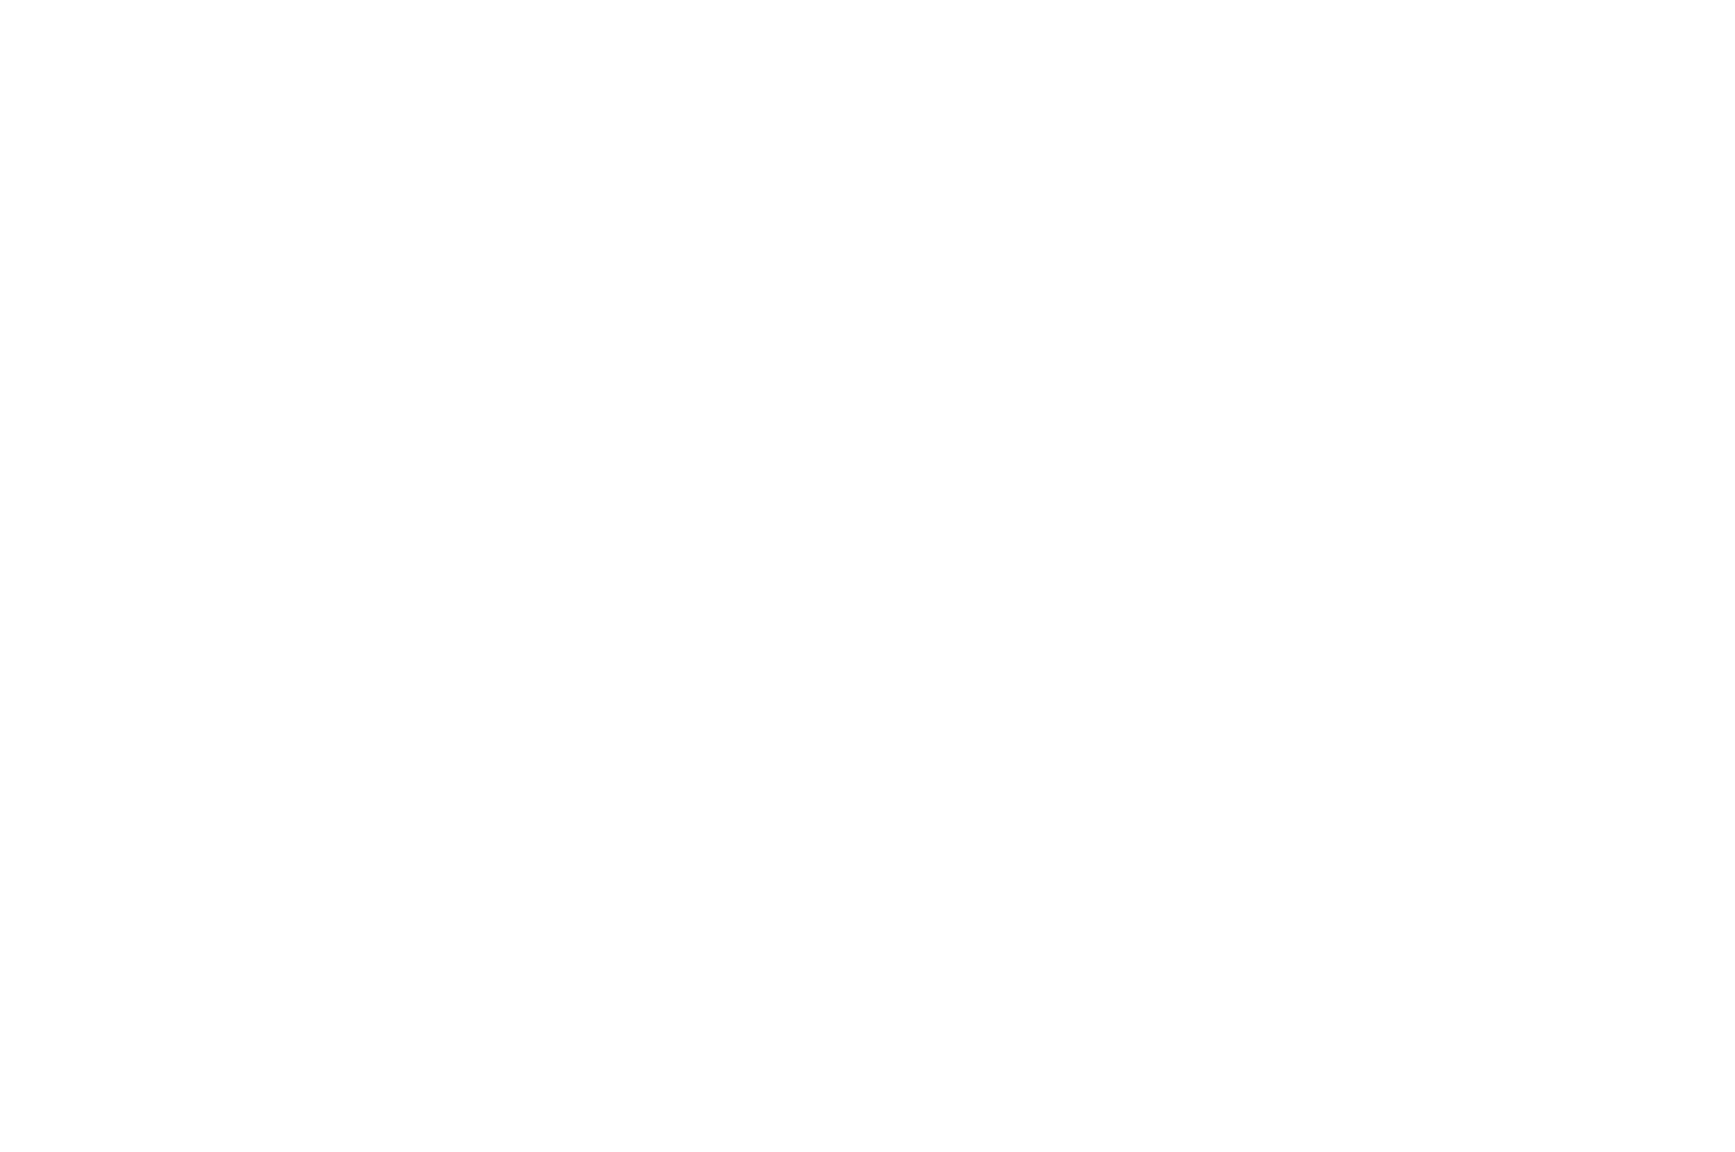 OFFICIAL SELECTION - MIDWEST WEIRDFEST - 2018-2.png